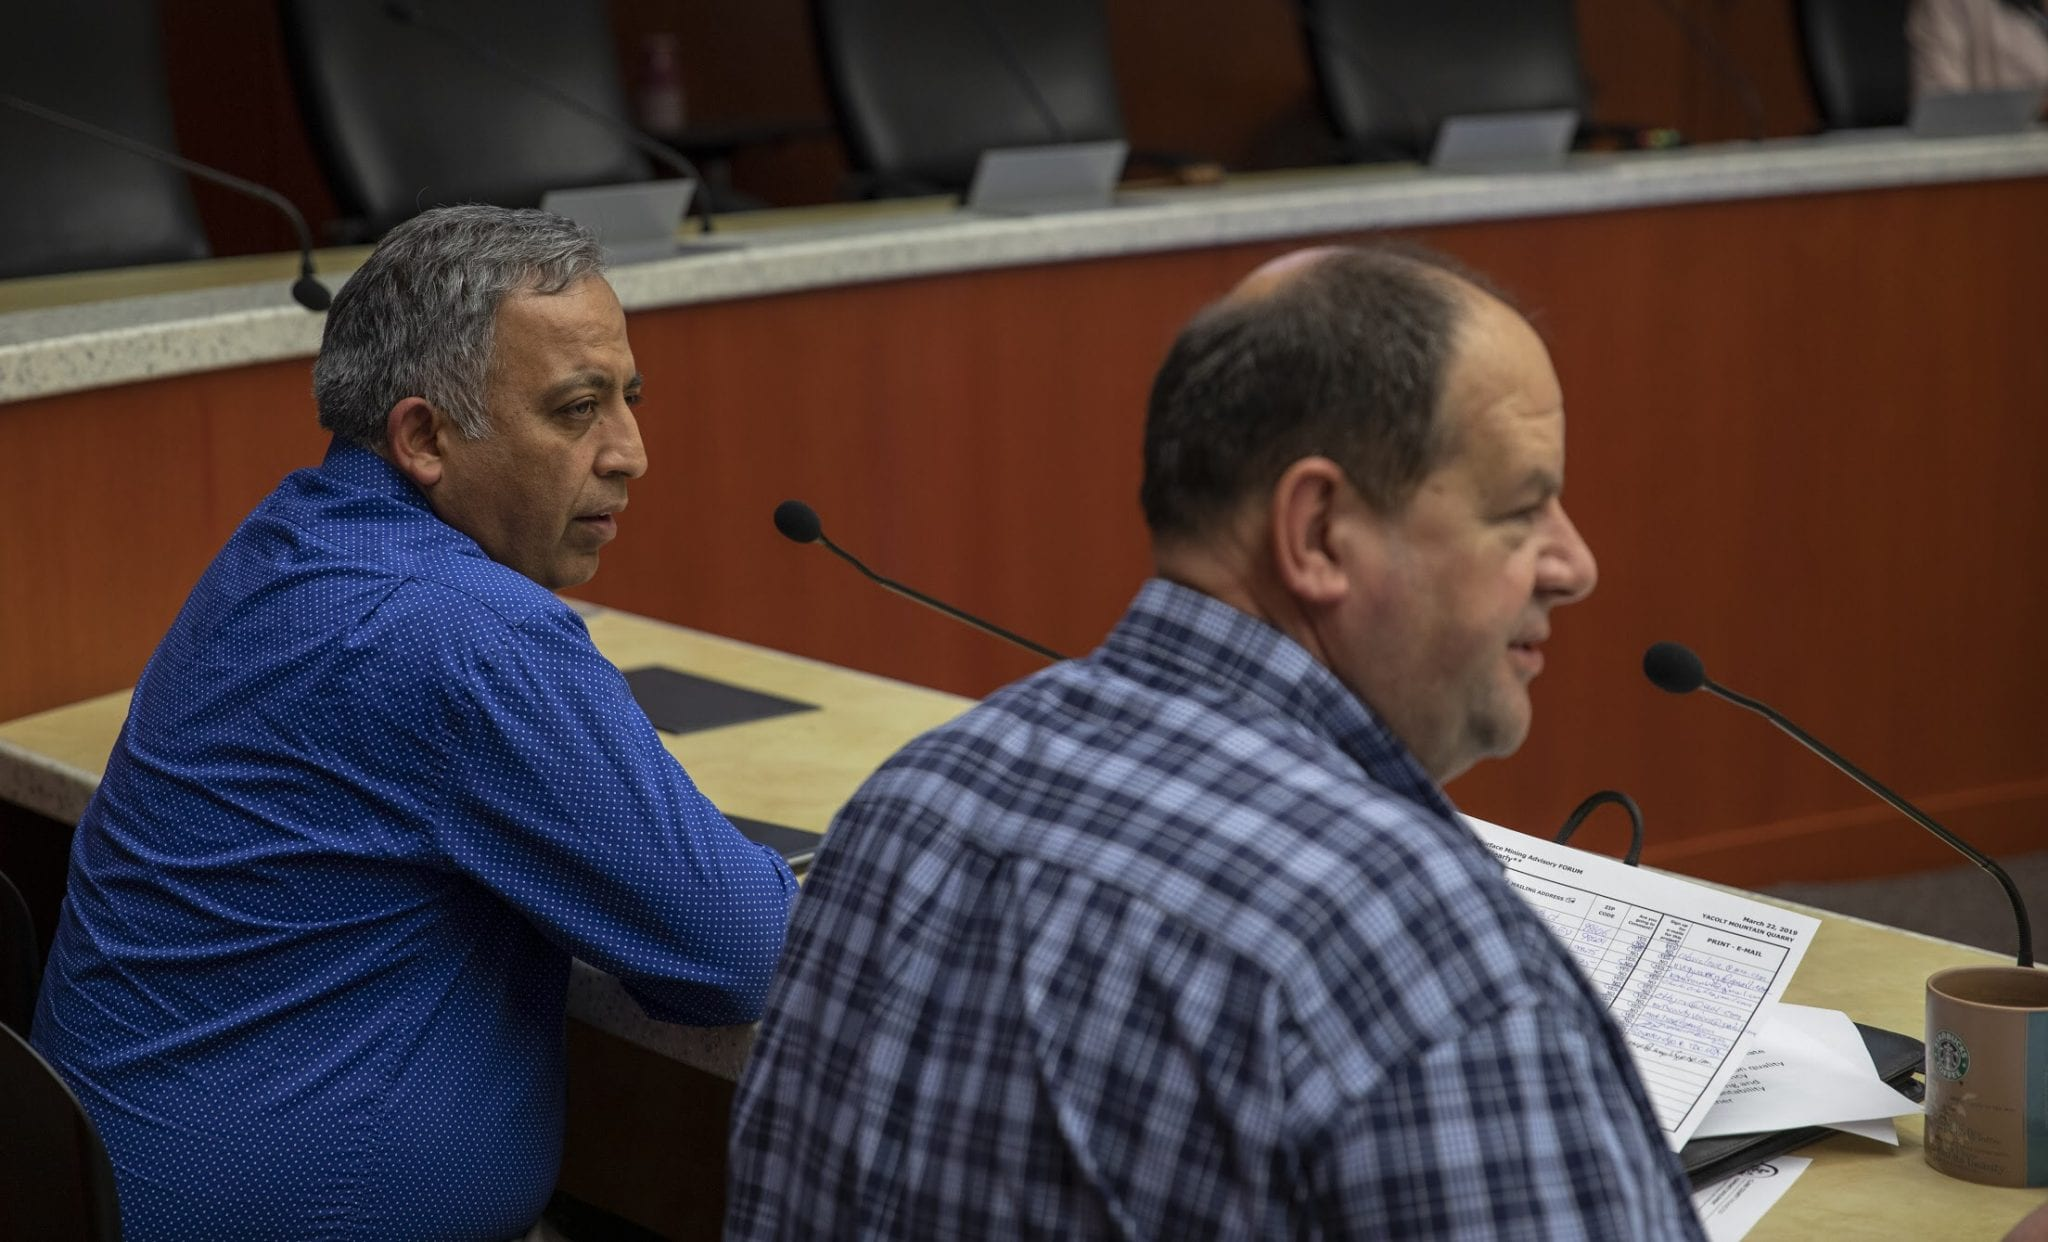 Public Works Director Ahmad Qayoumi (left) and Clark County Community Planning Director Mitch Nickolds (right). Photo by Jacob Granneman